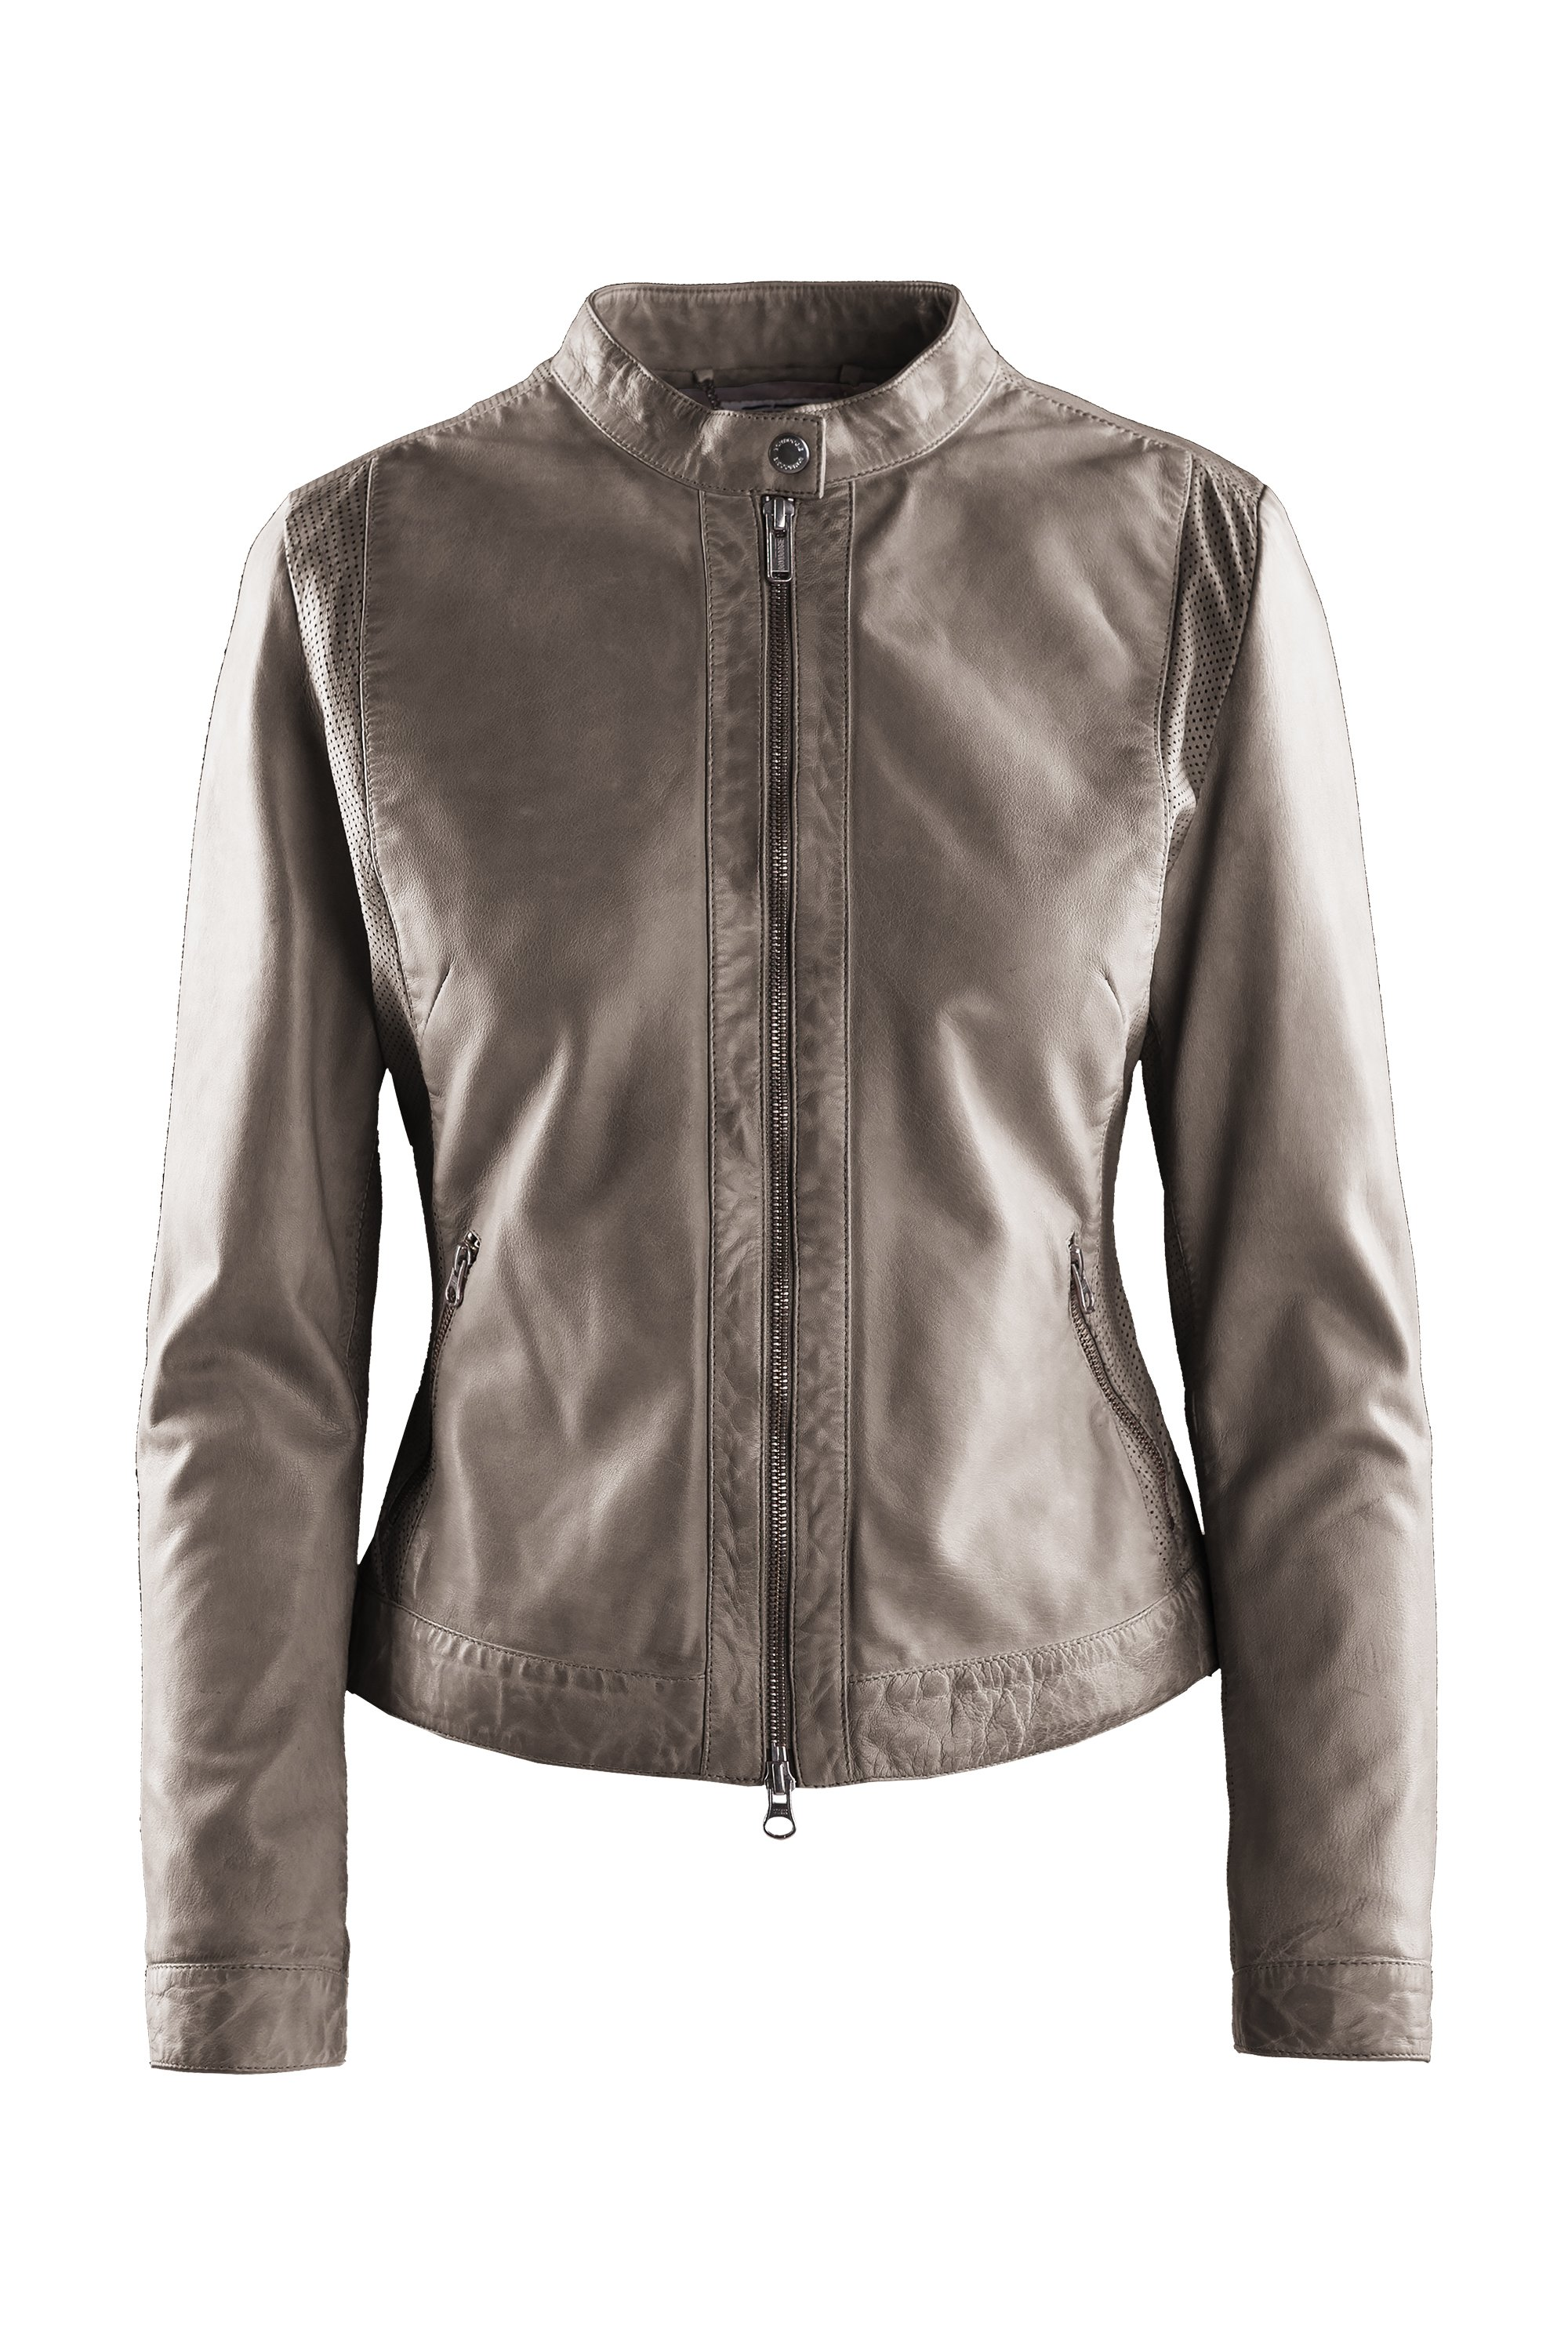 Raja leather jacket